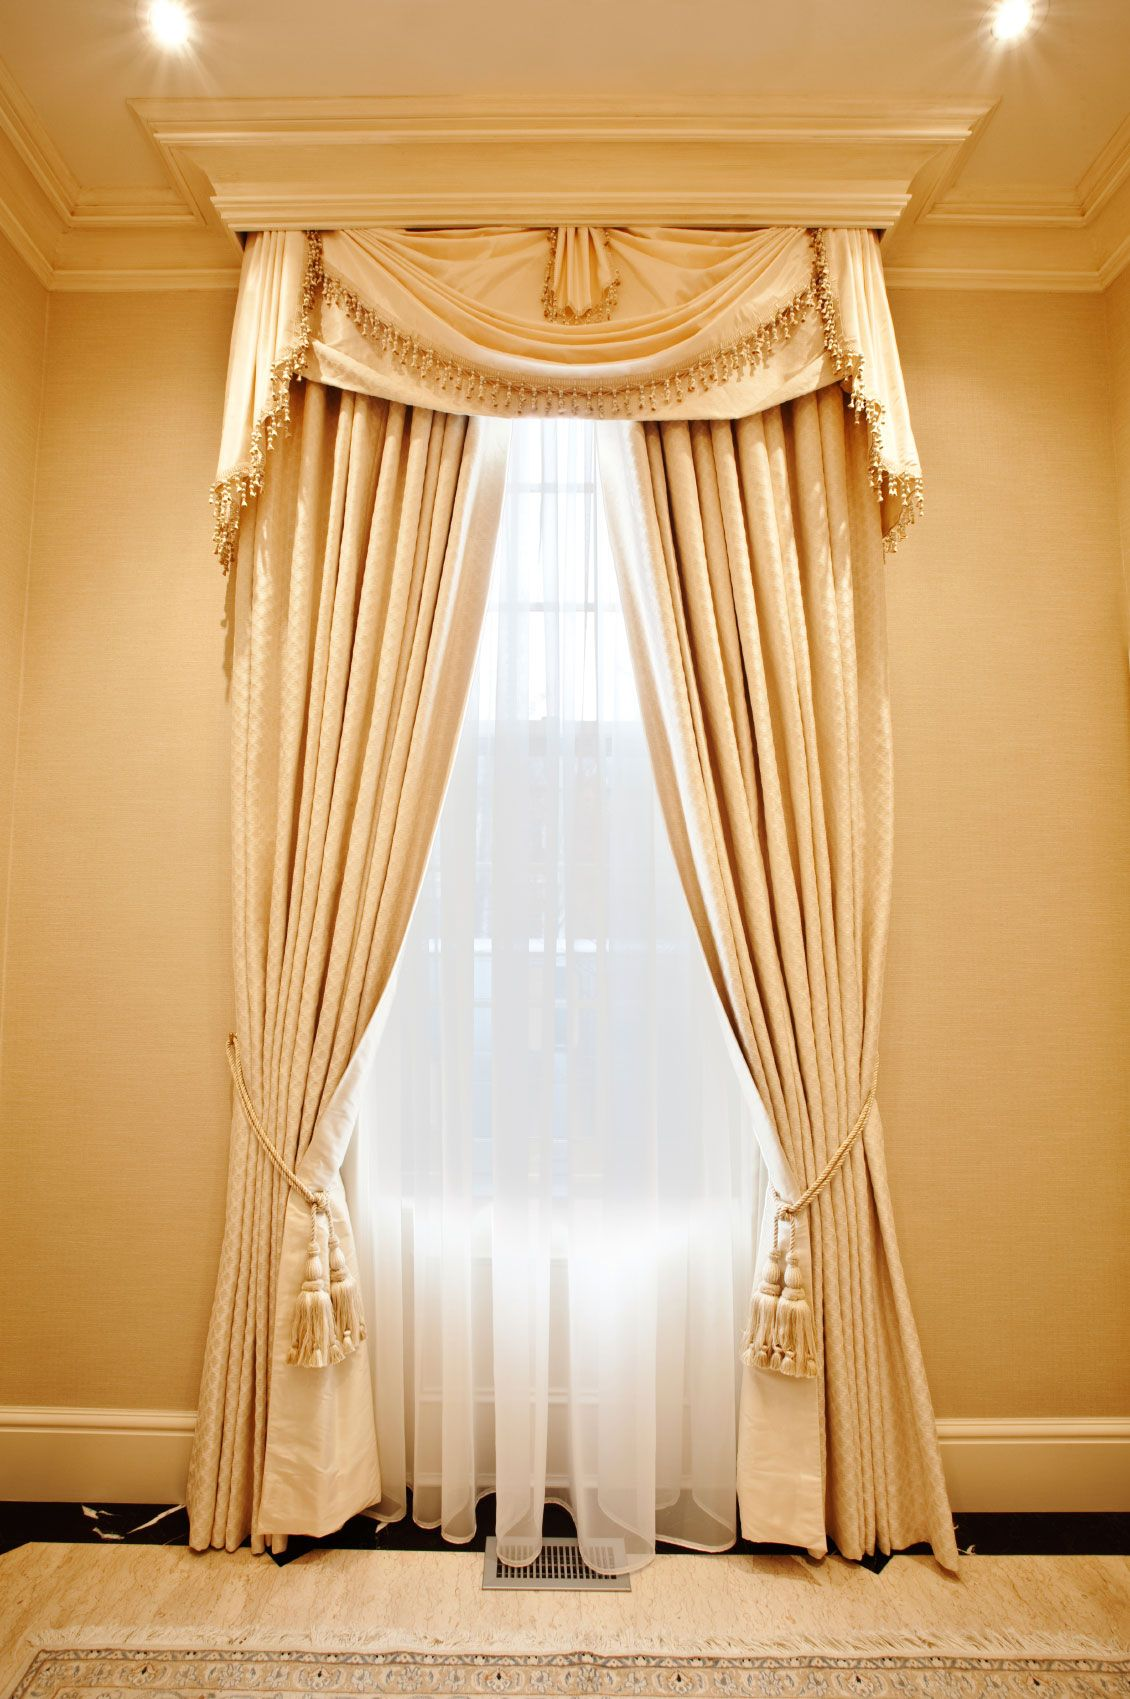 Curtain Decor Ideas For Living Room: Curtain Ideas To Enhance The Beauty